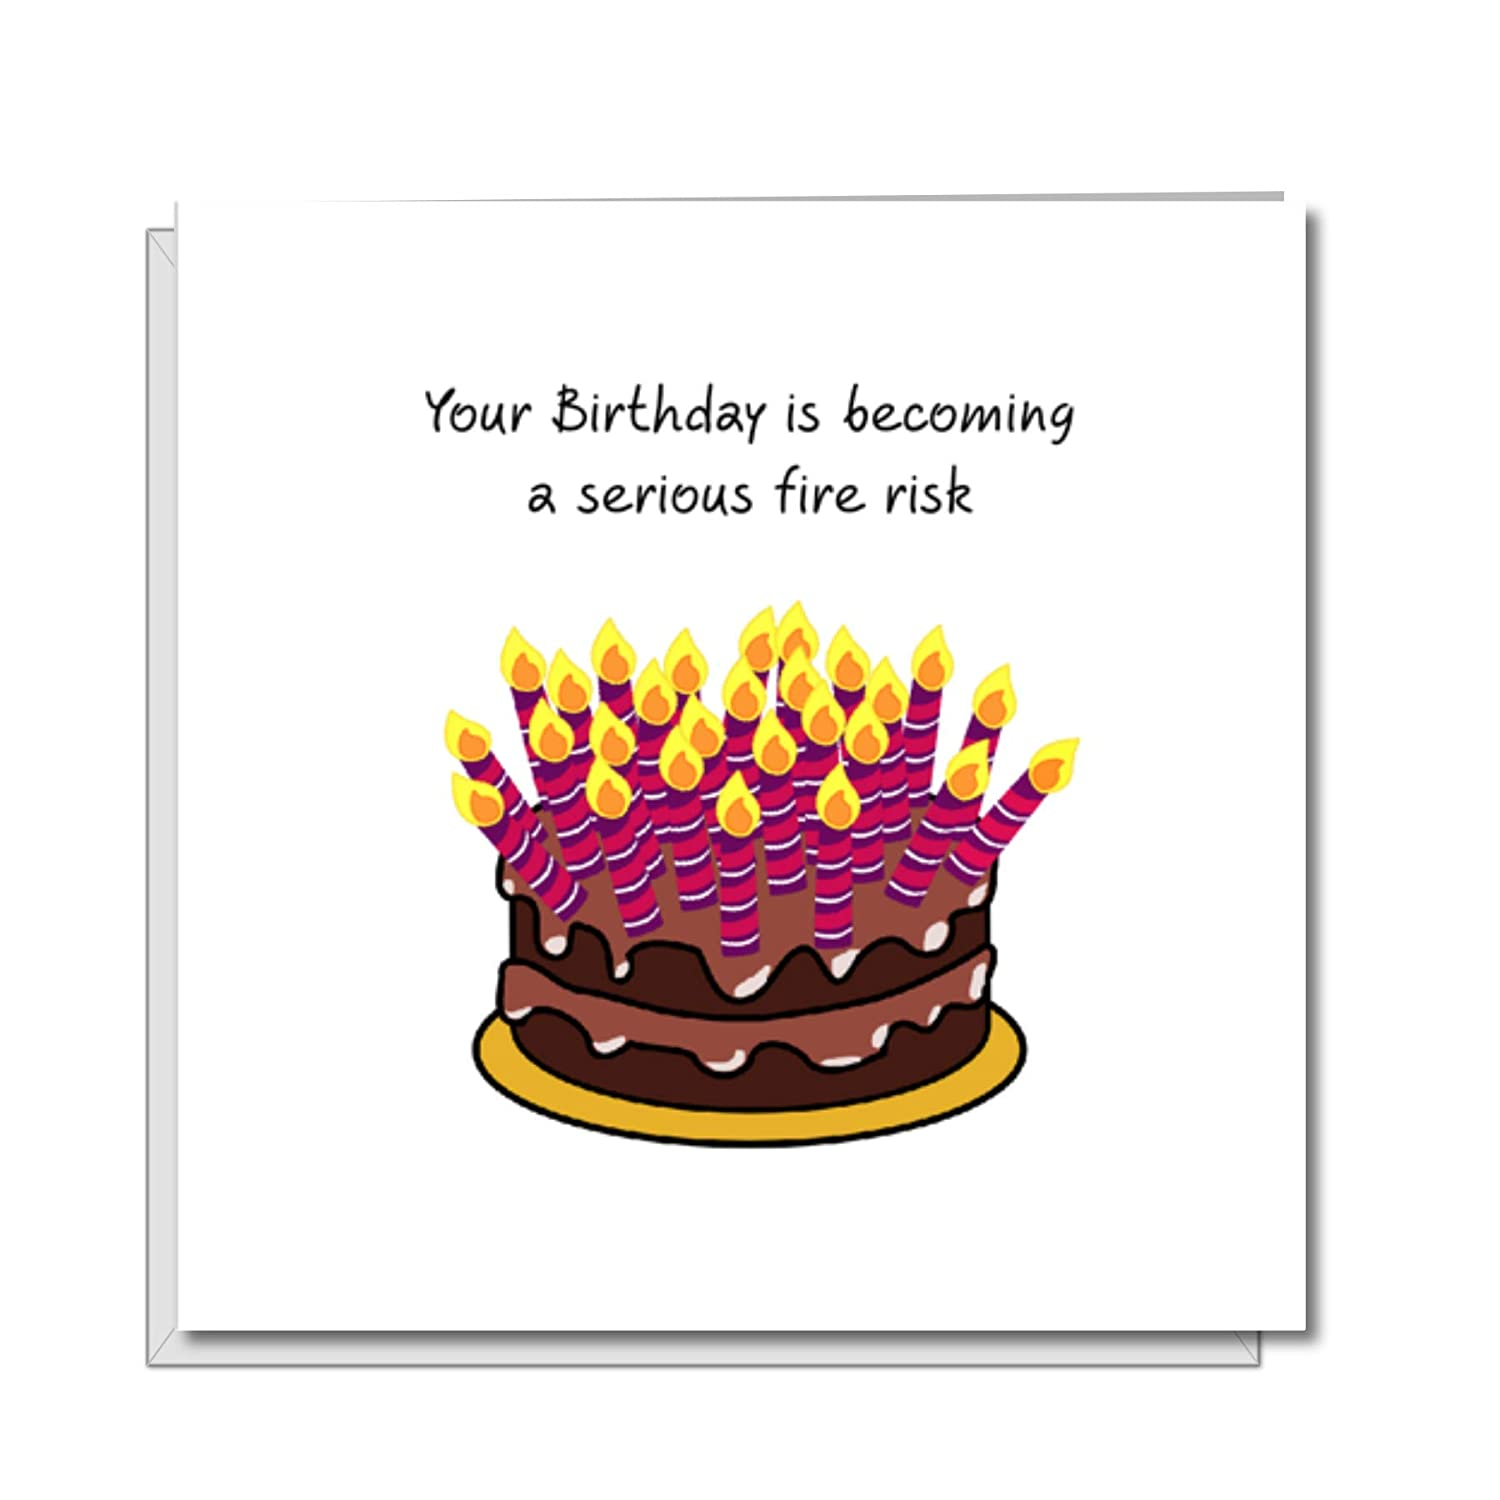 Admirable Funny Birthday Card With Cake And Candles Dad Mum Friend Funny Funny Birthday Cards Online Alyptdamsfinfo